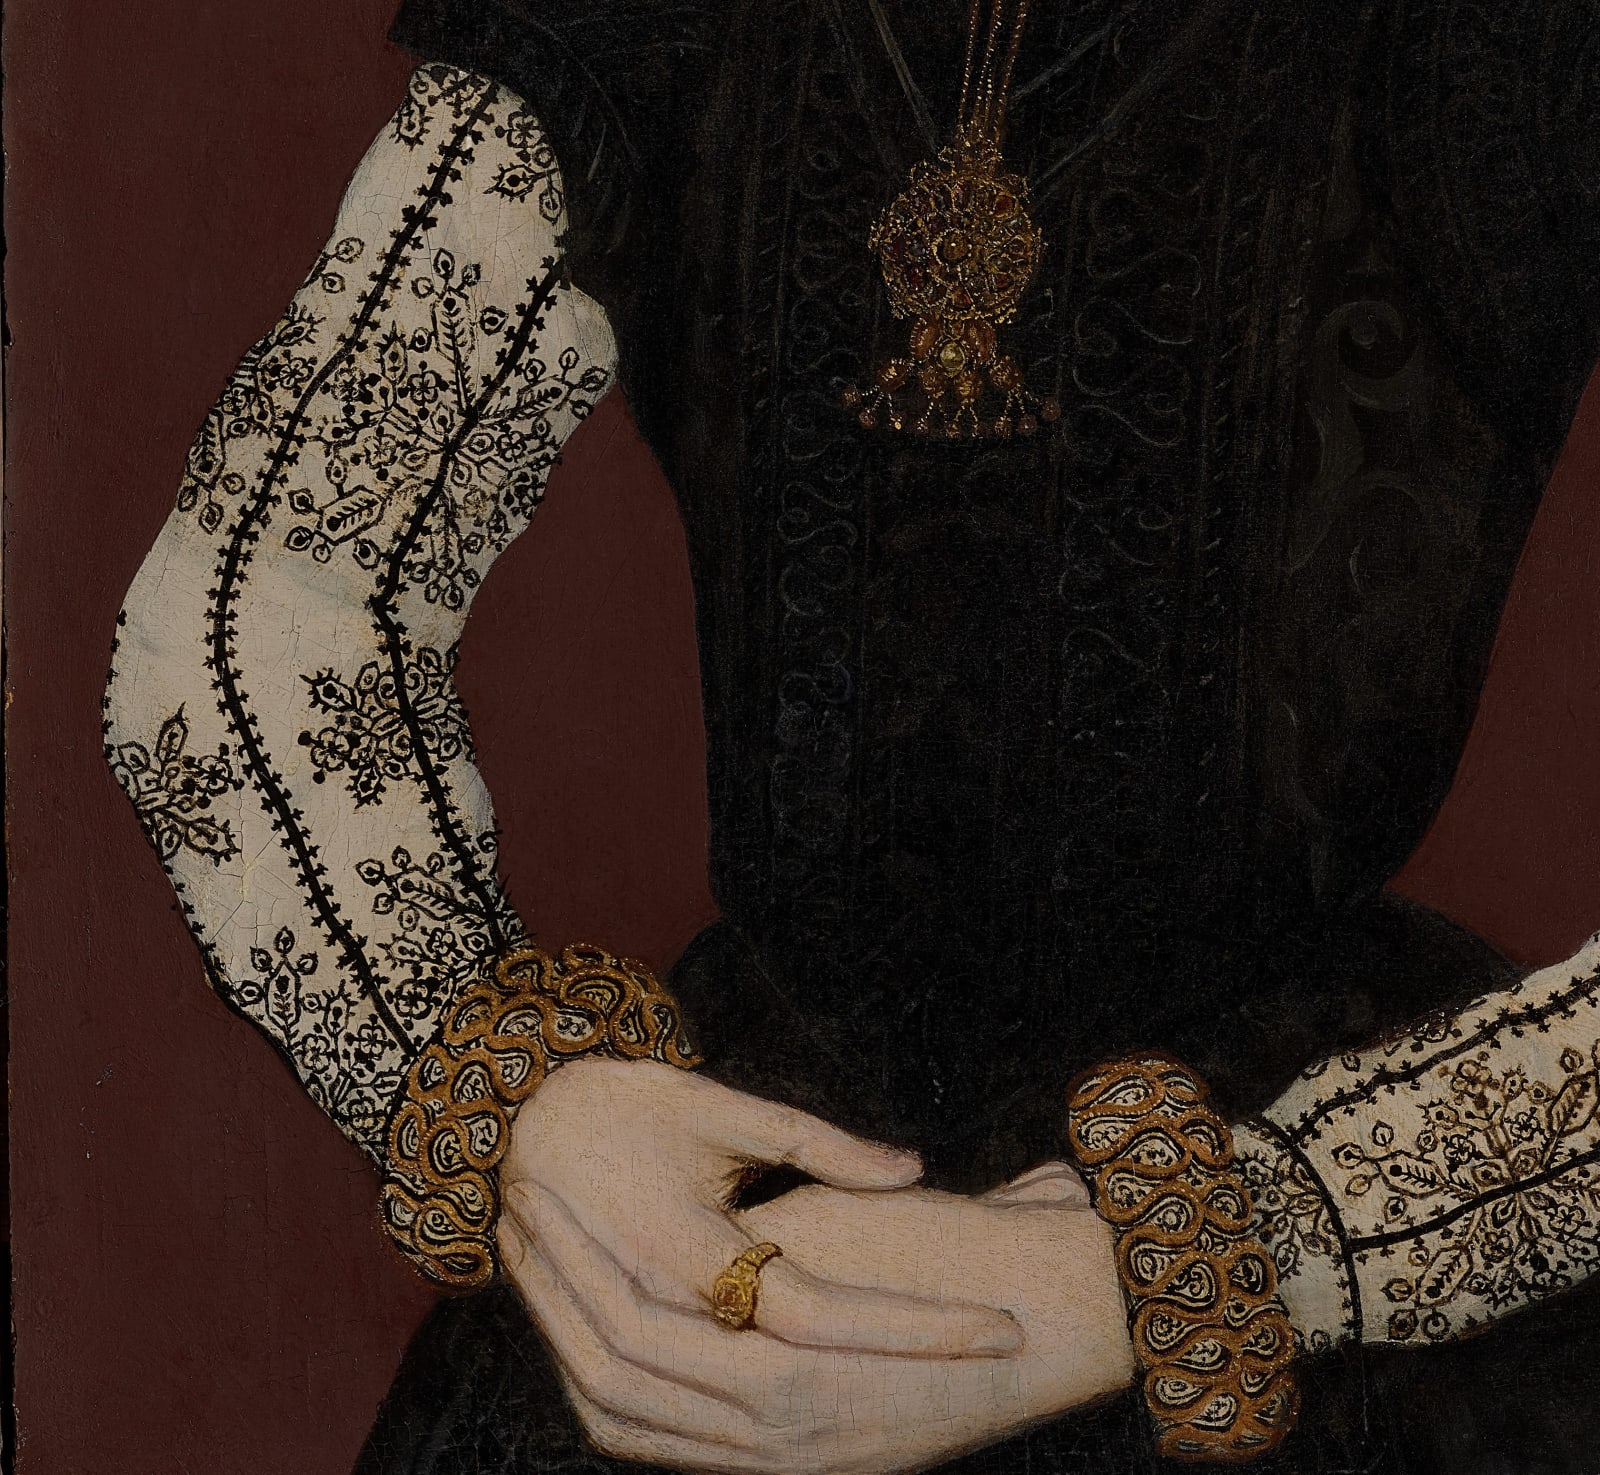 Fig. 2. Detail of shell gold | Master of the Countess of Warwick, Portrait of Mary Potter, Nee Tichborne, 1565.